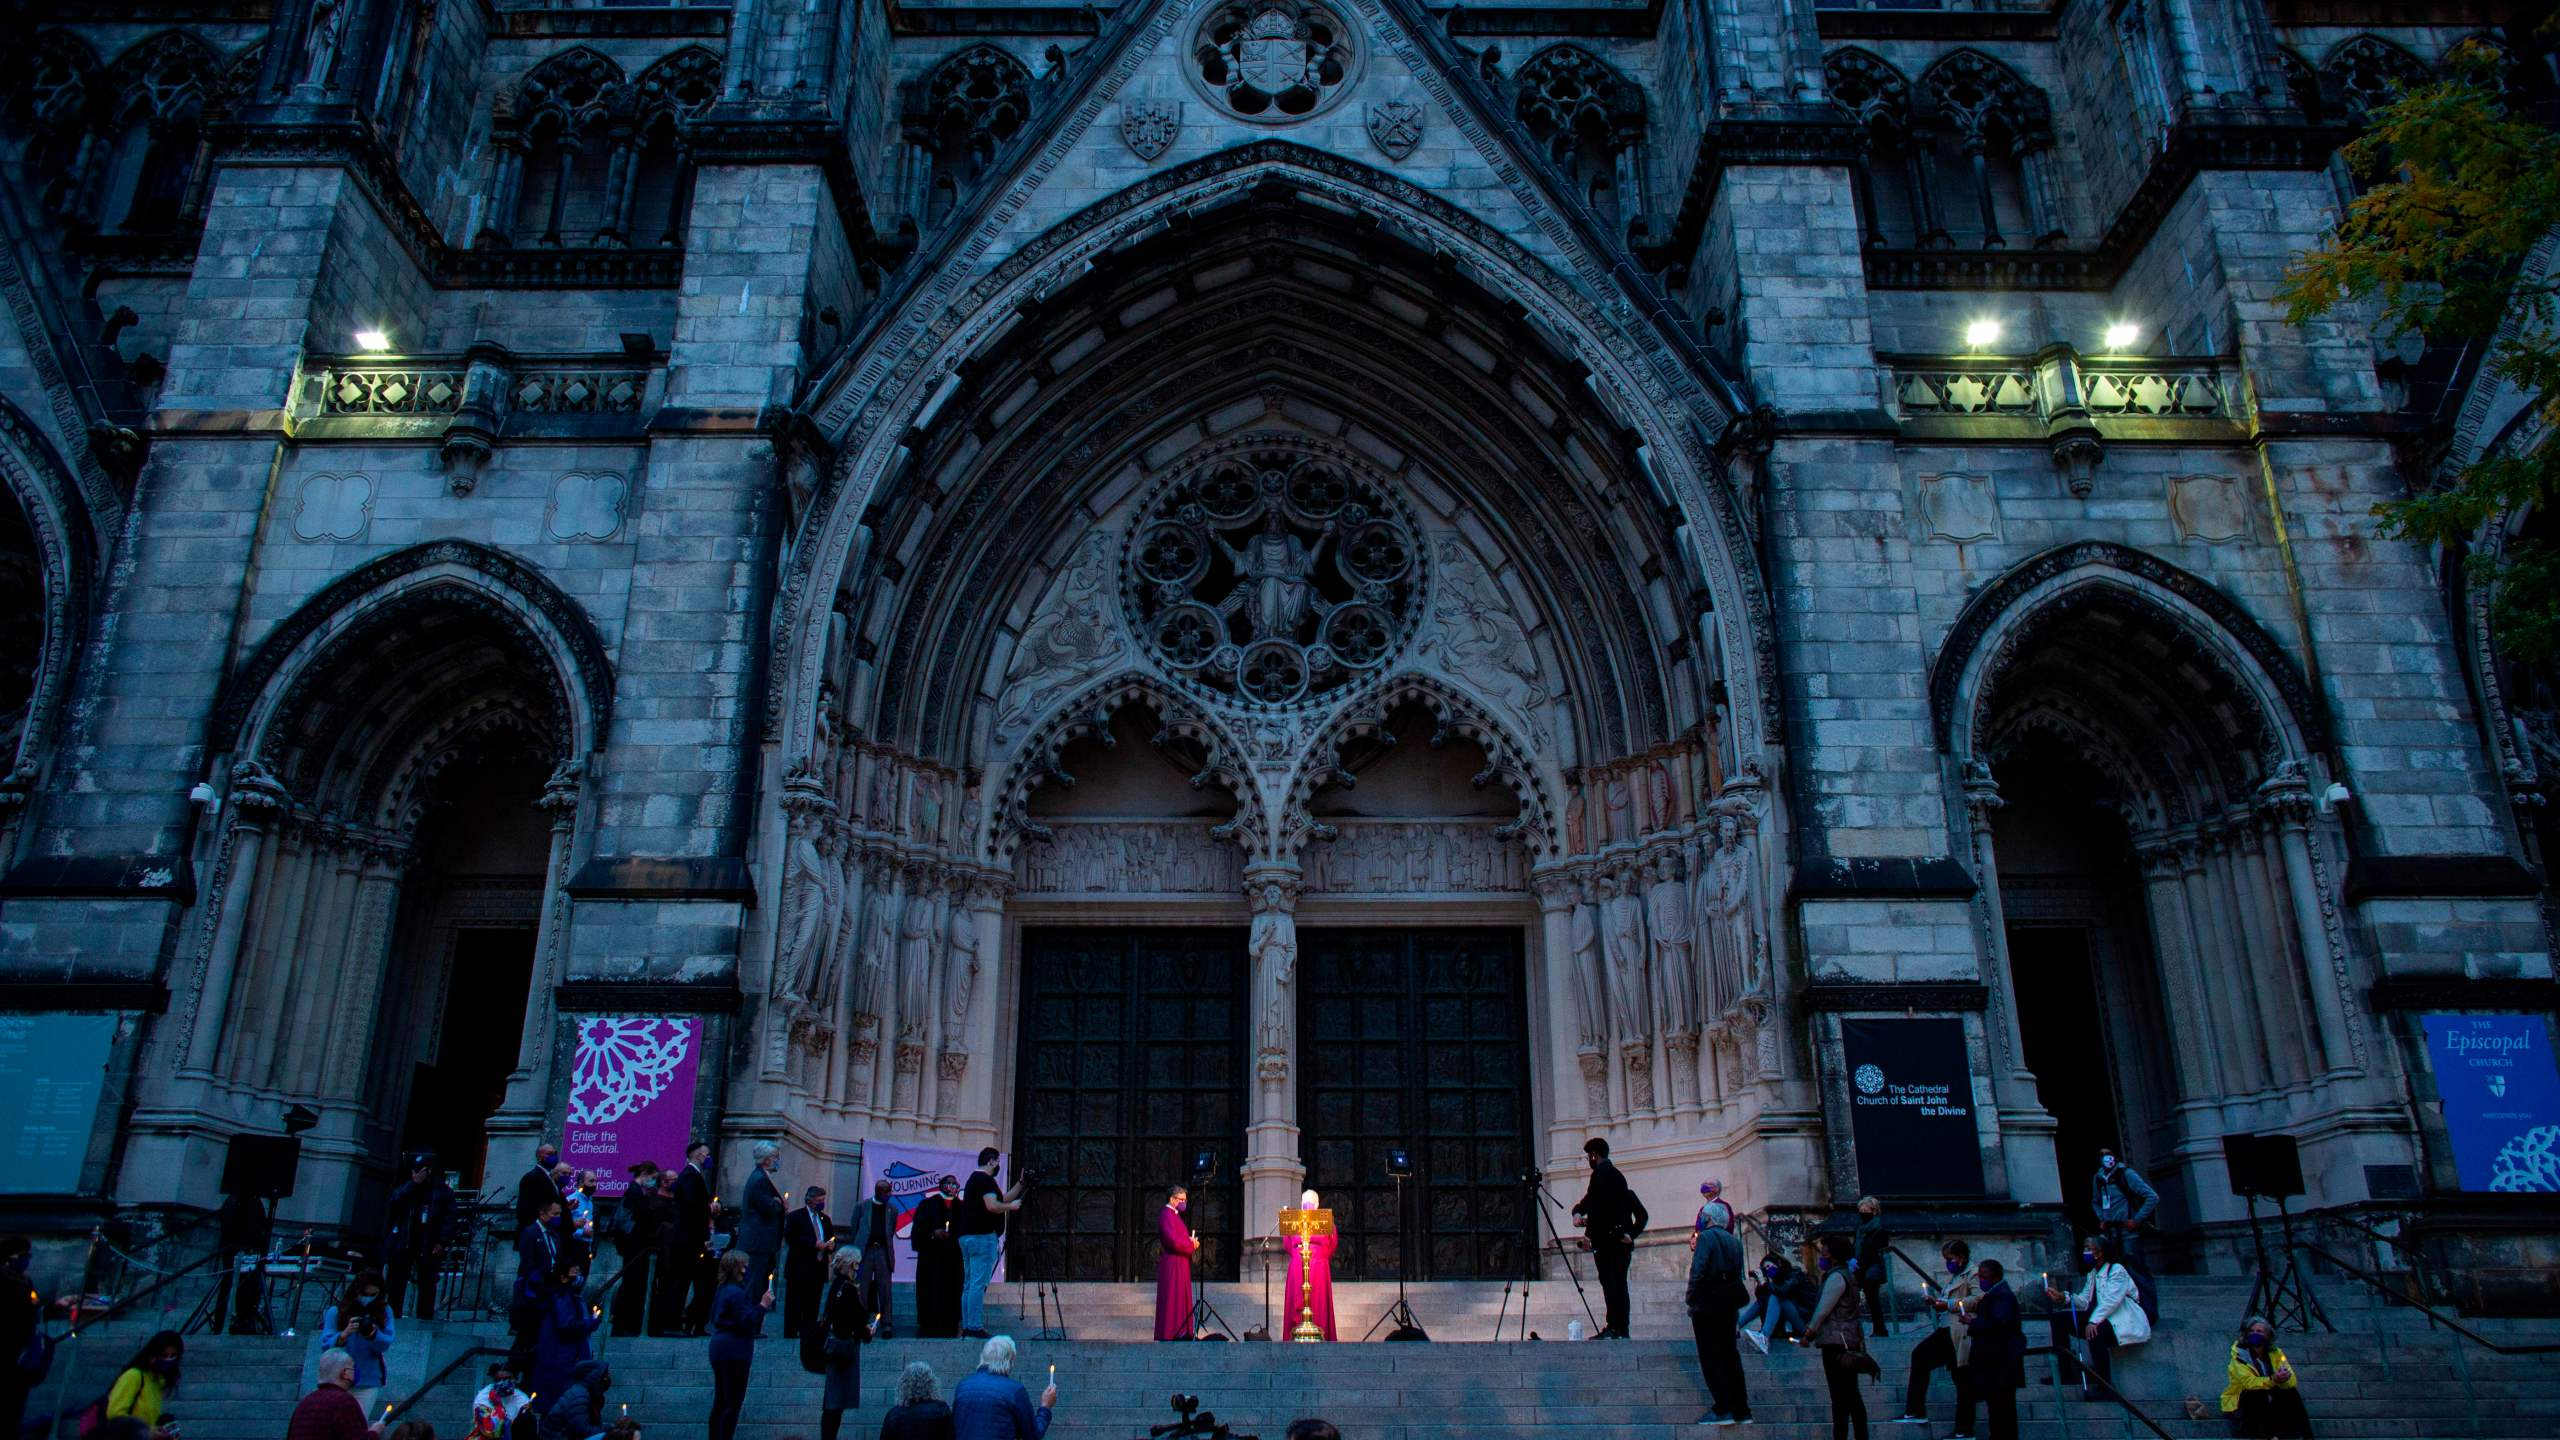 People attend a candlelight vigil a procession in tribute to all of the lives affected by the novel coronavirus outside The Cathedral of St. John the Divine in New York City on Oct. 19, 2020. (Kena Betancur / AFP / Getty Images)